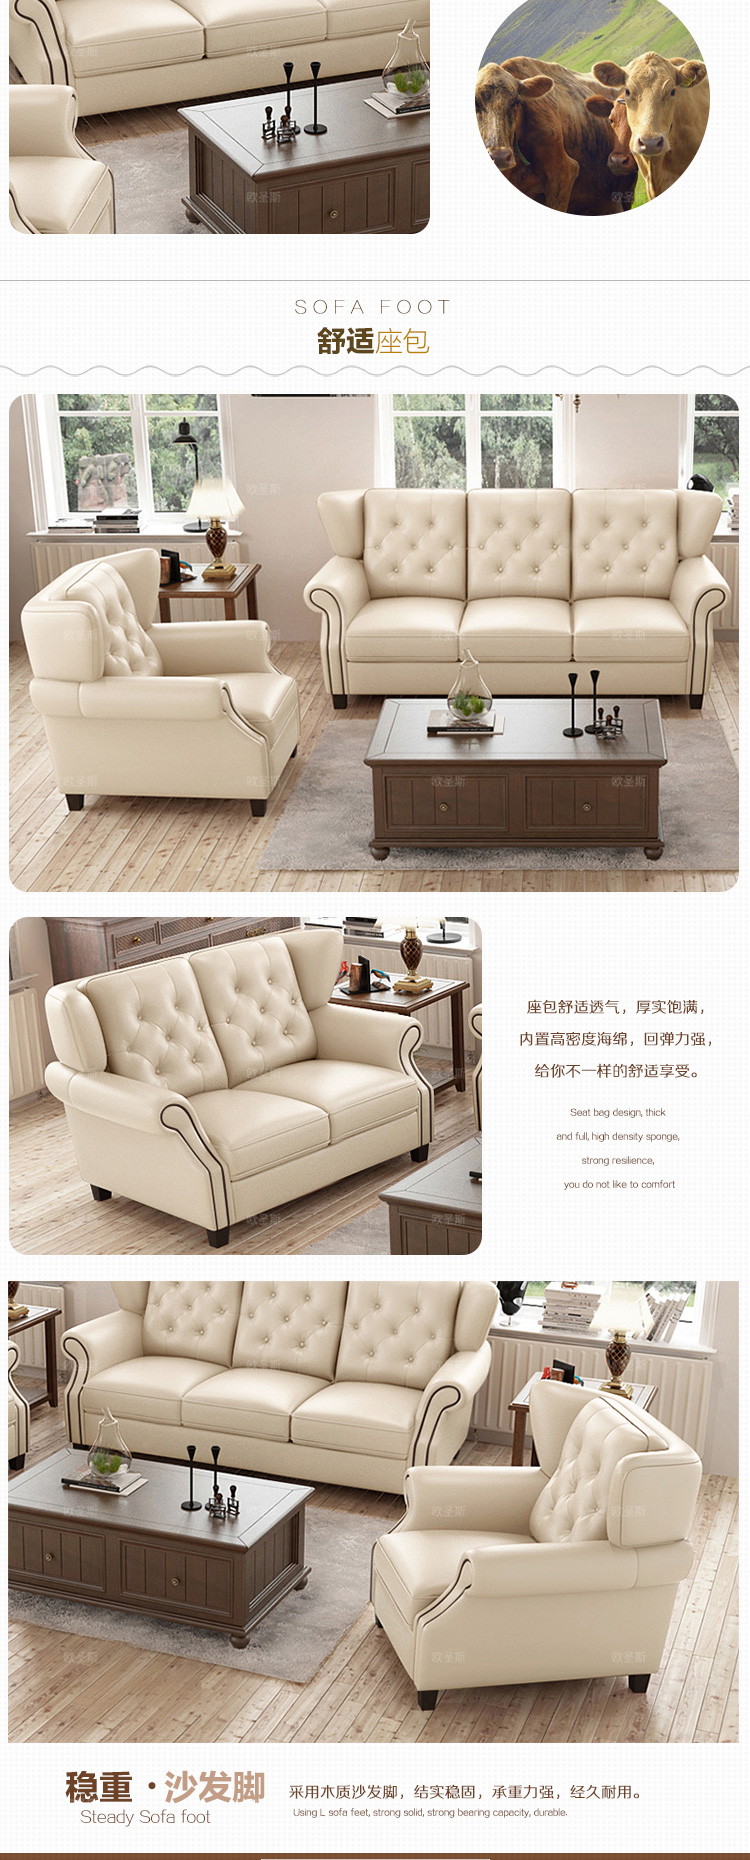 New Style Sofa Set Design Us 1045 5 Off Latest Sofa Set Designs 6 Seater American Style Chesterfield New Antique Furniture Vintage Brown Leather Sofa Set Price F80a In